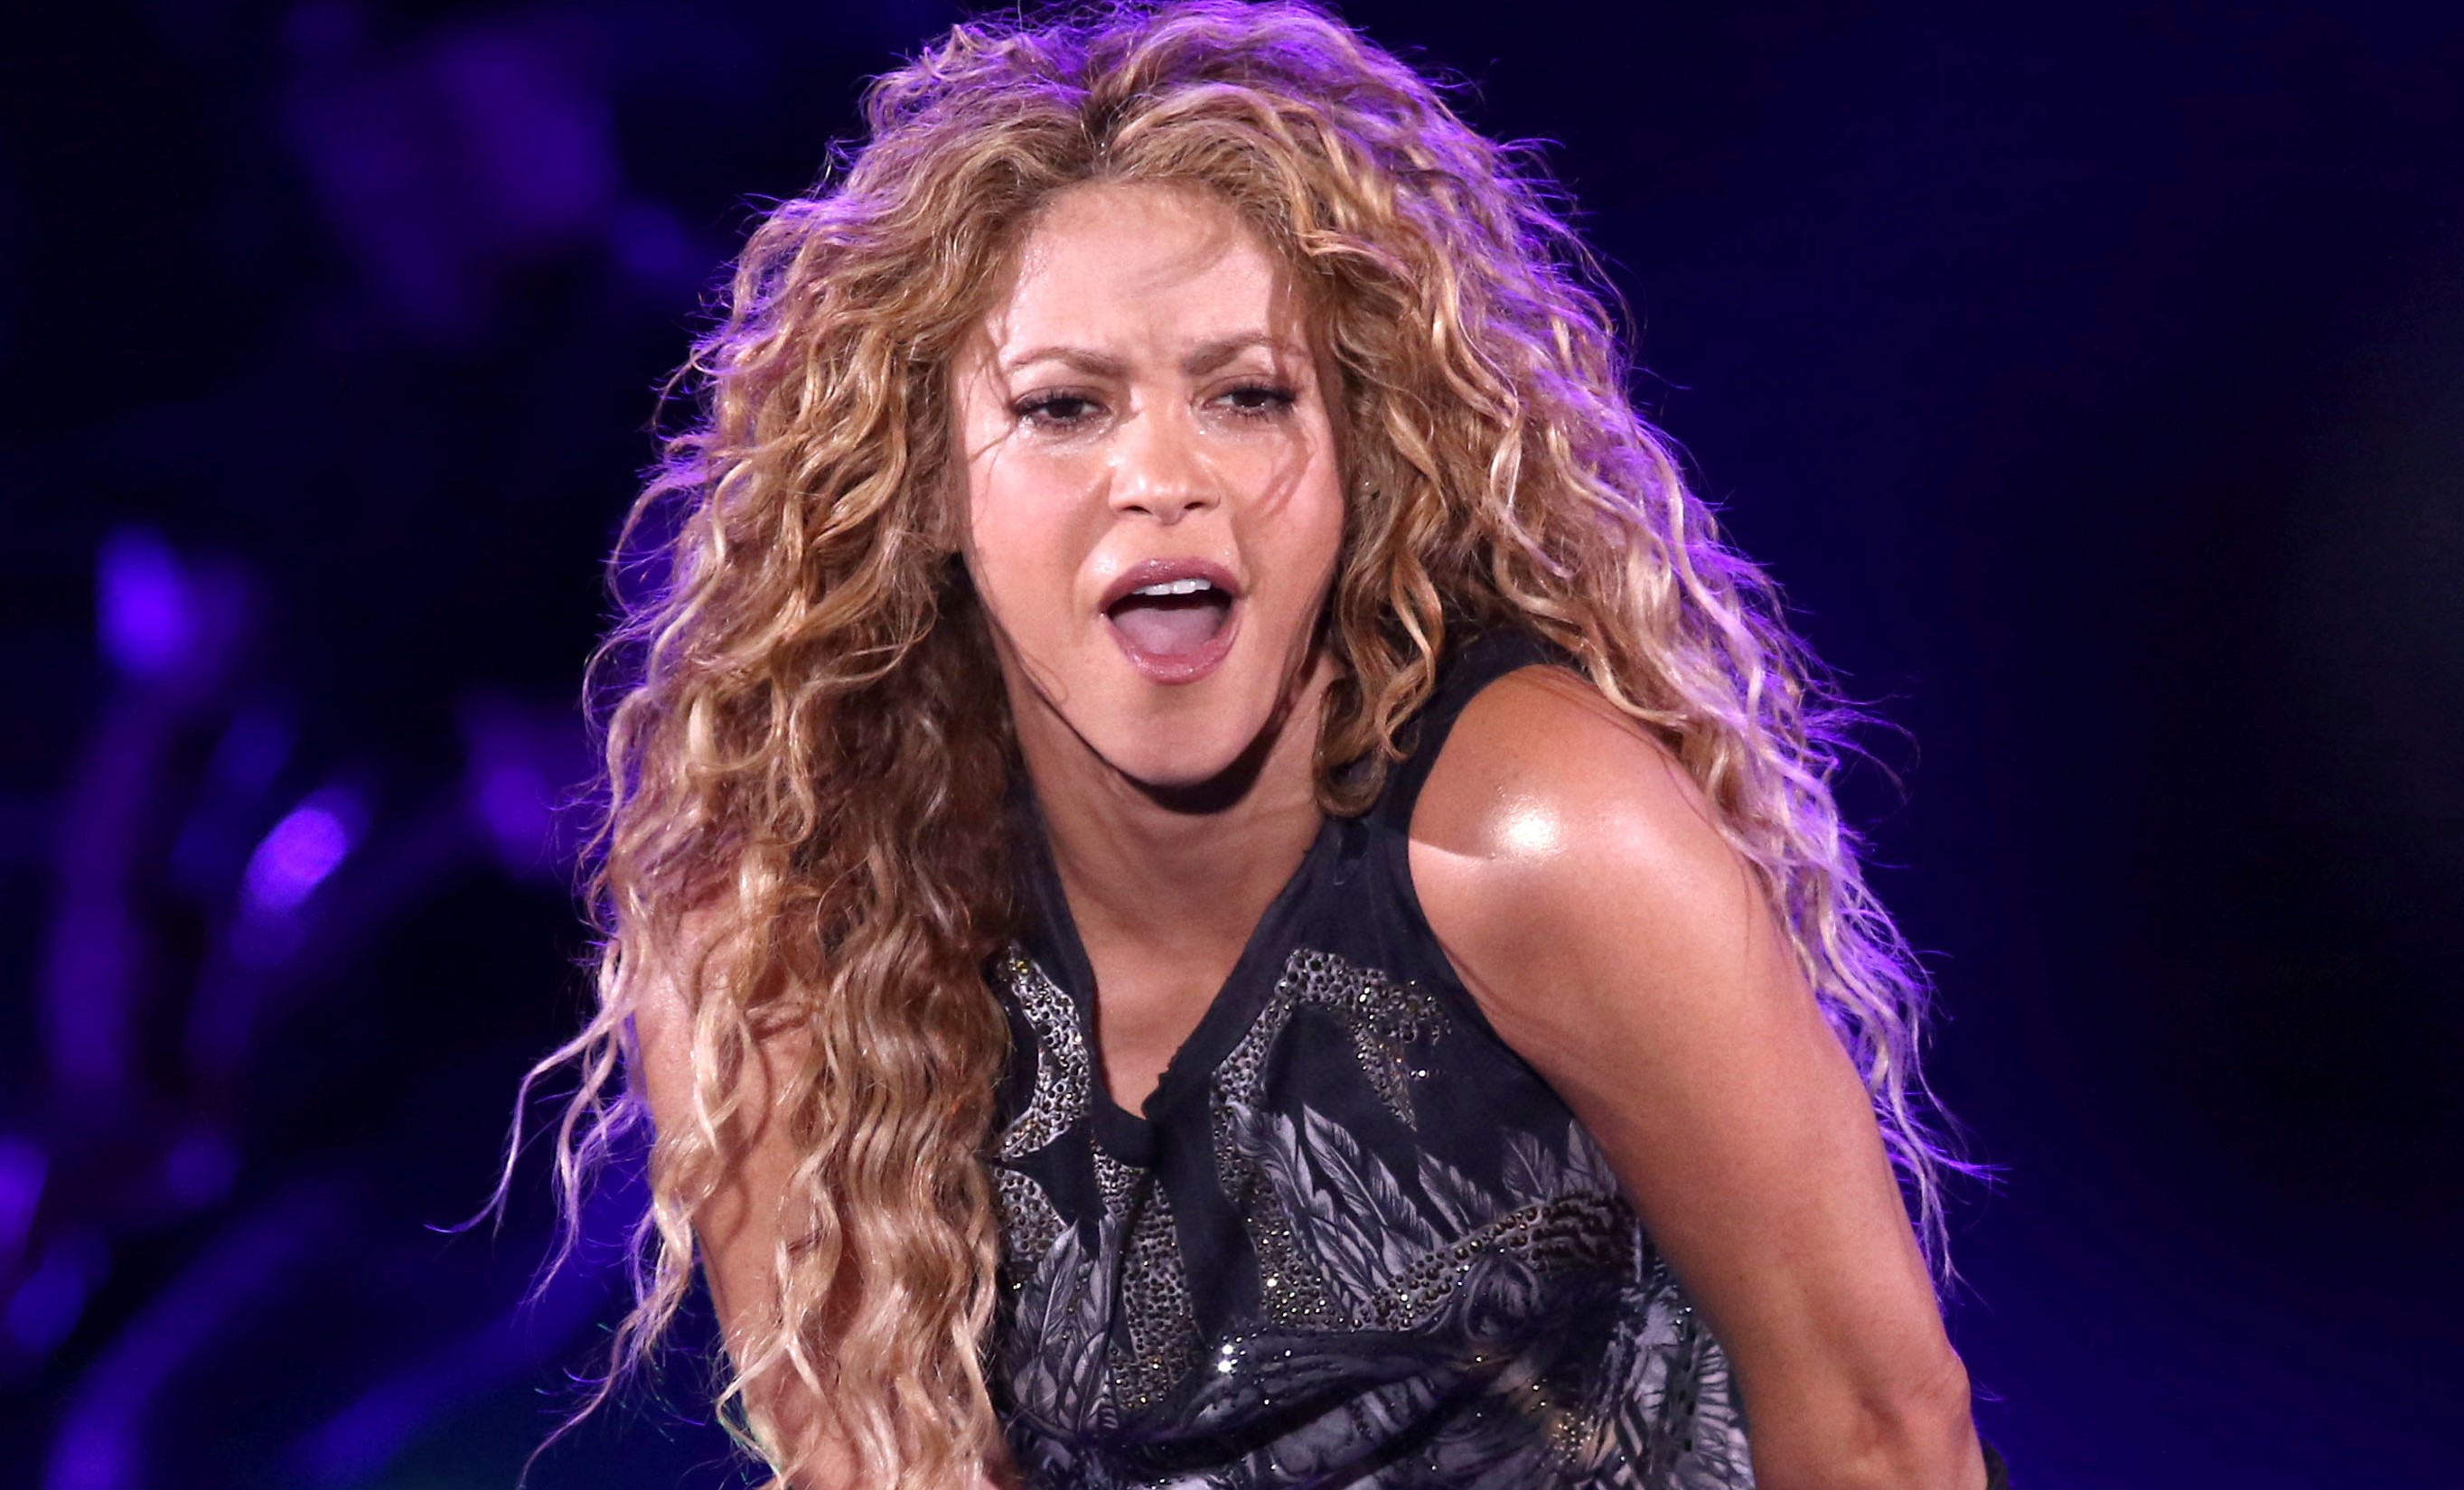 Shakira performs in concert at Madison Square Garden in New York in 2018.